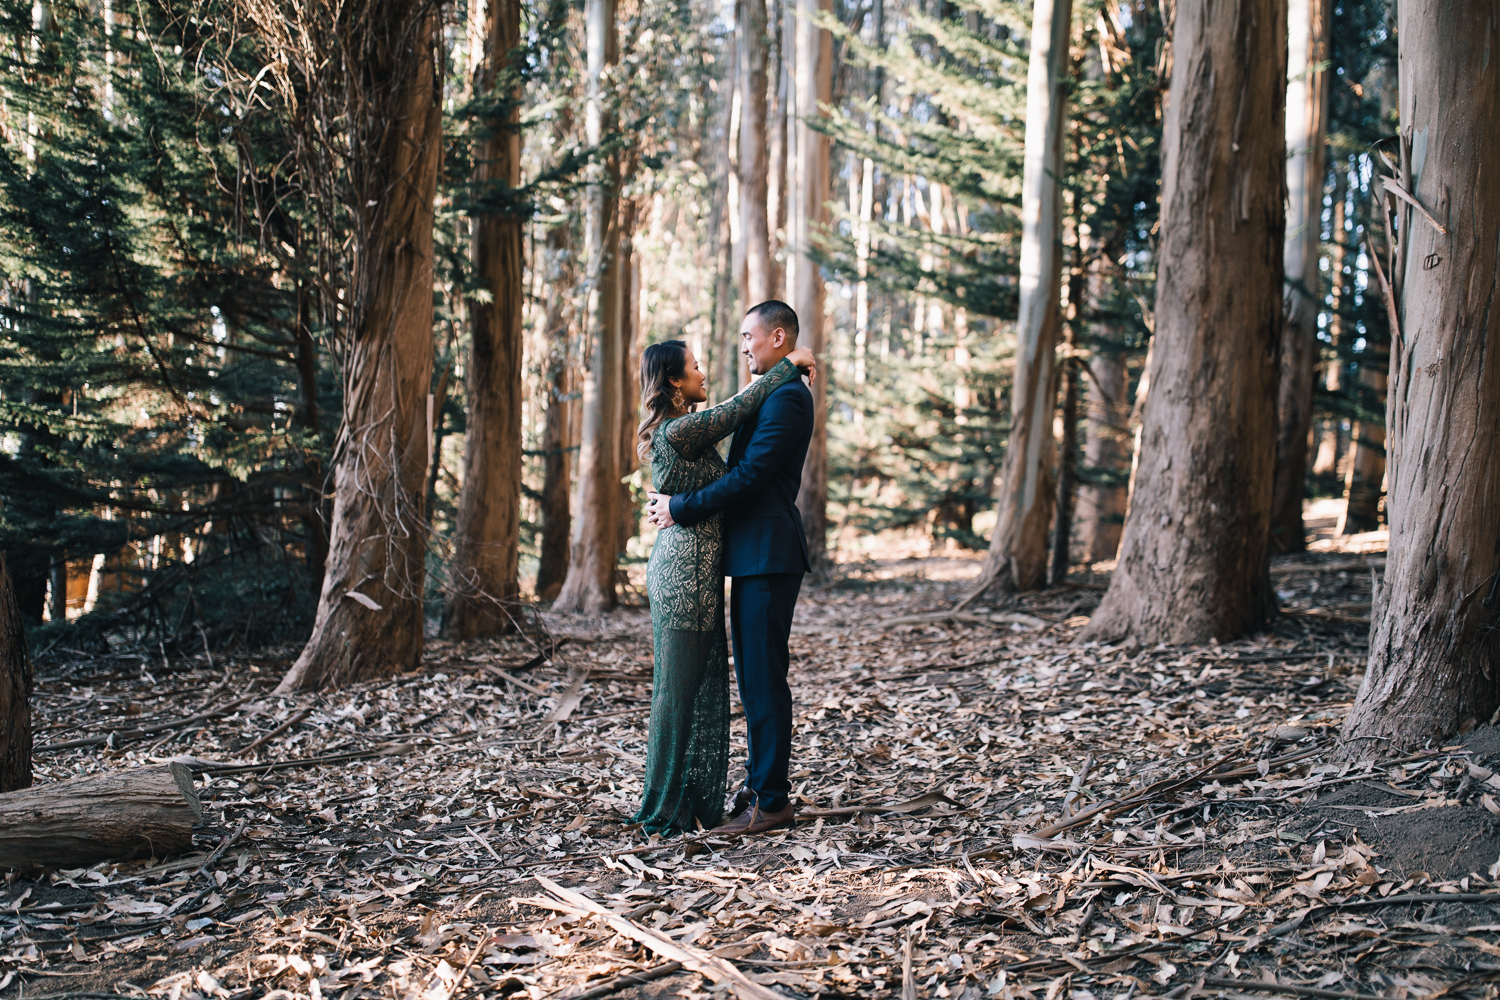 2018_11_ 042018.11.4 Leah + Ed Engagement Session Blog photos Edited For Web 0040.jpg